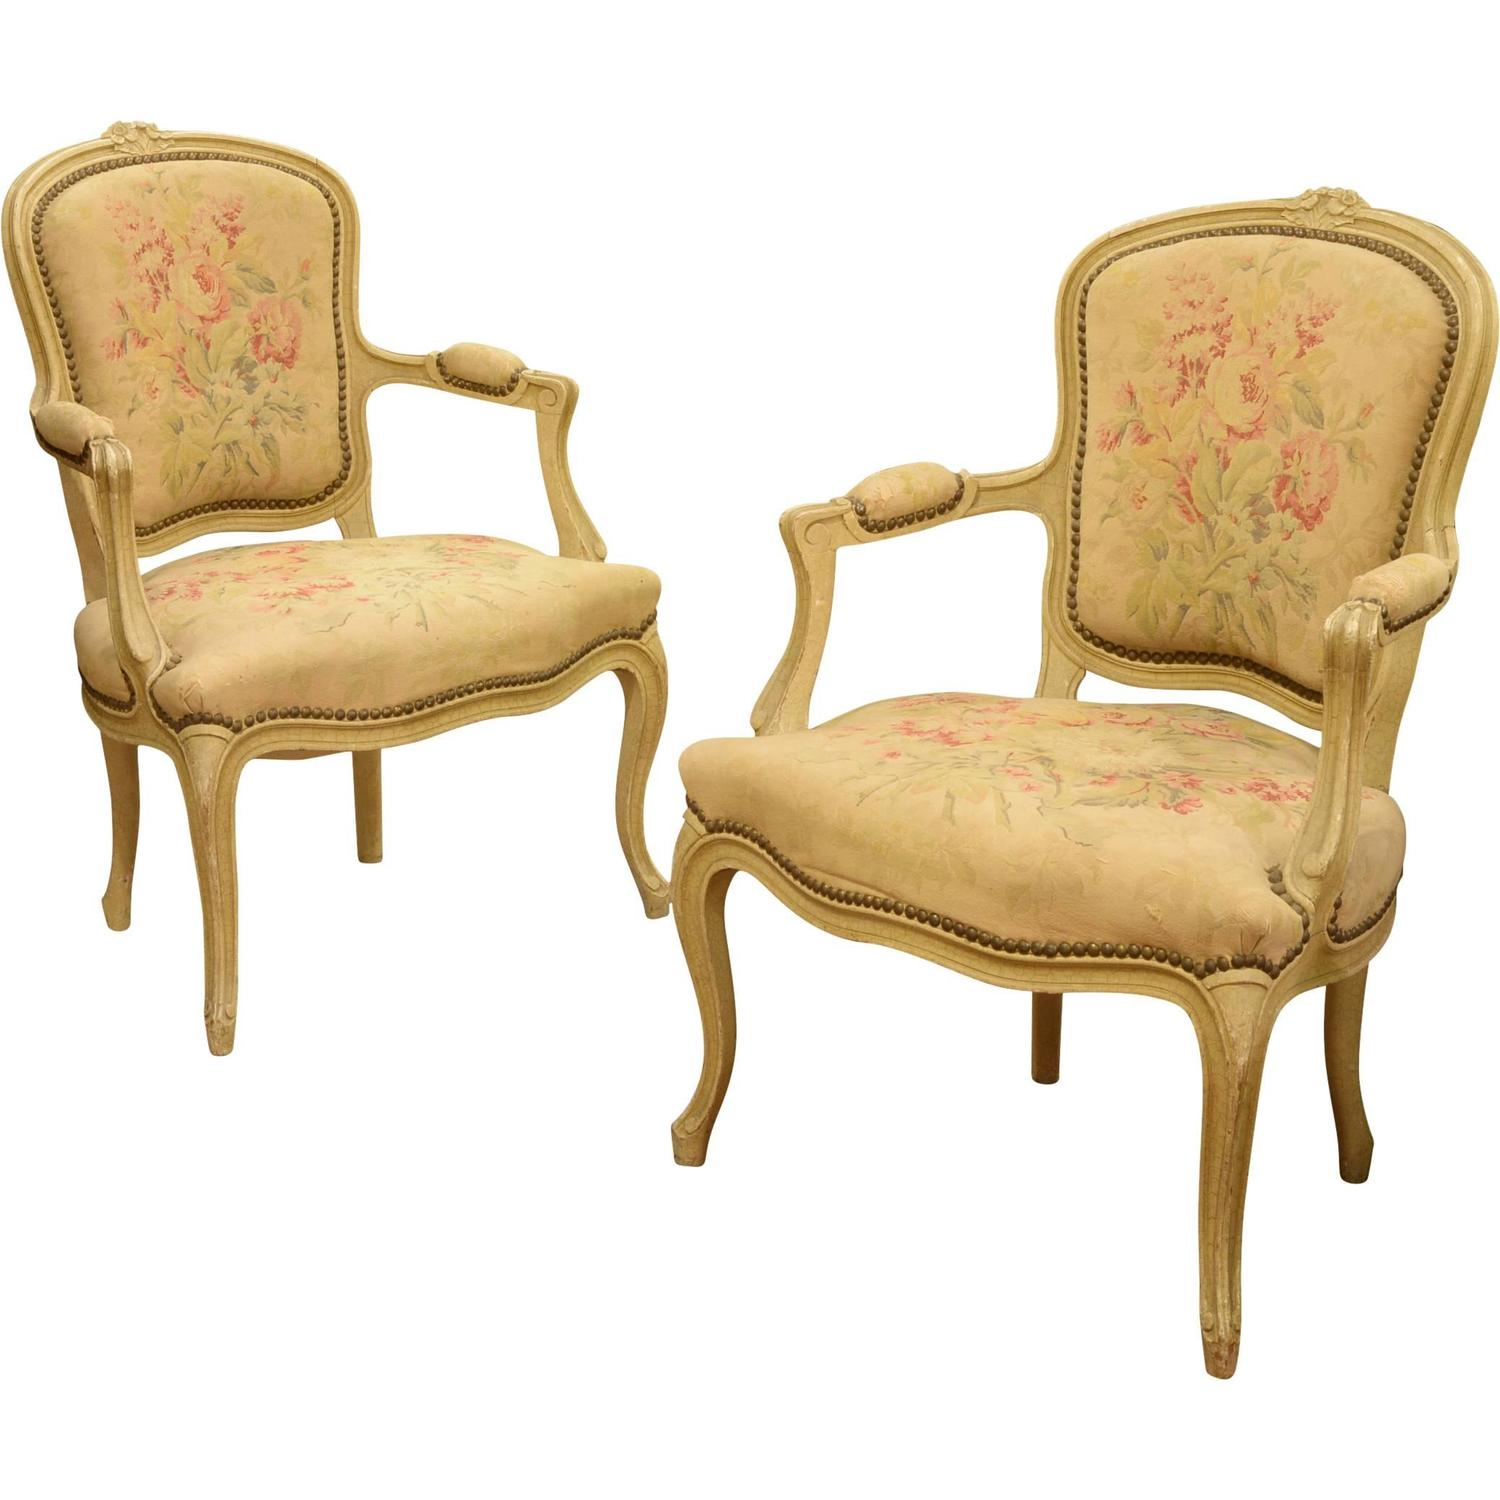 Pair of French Louis XV Style Fauteille Chairs at 1stdibs